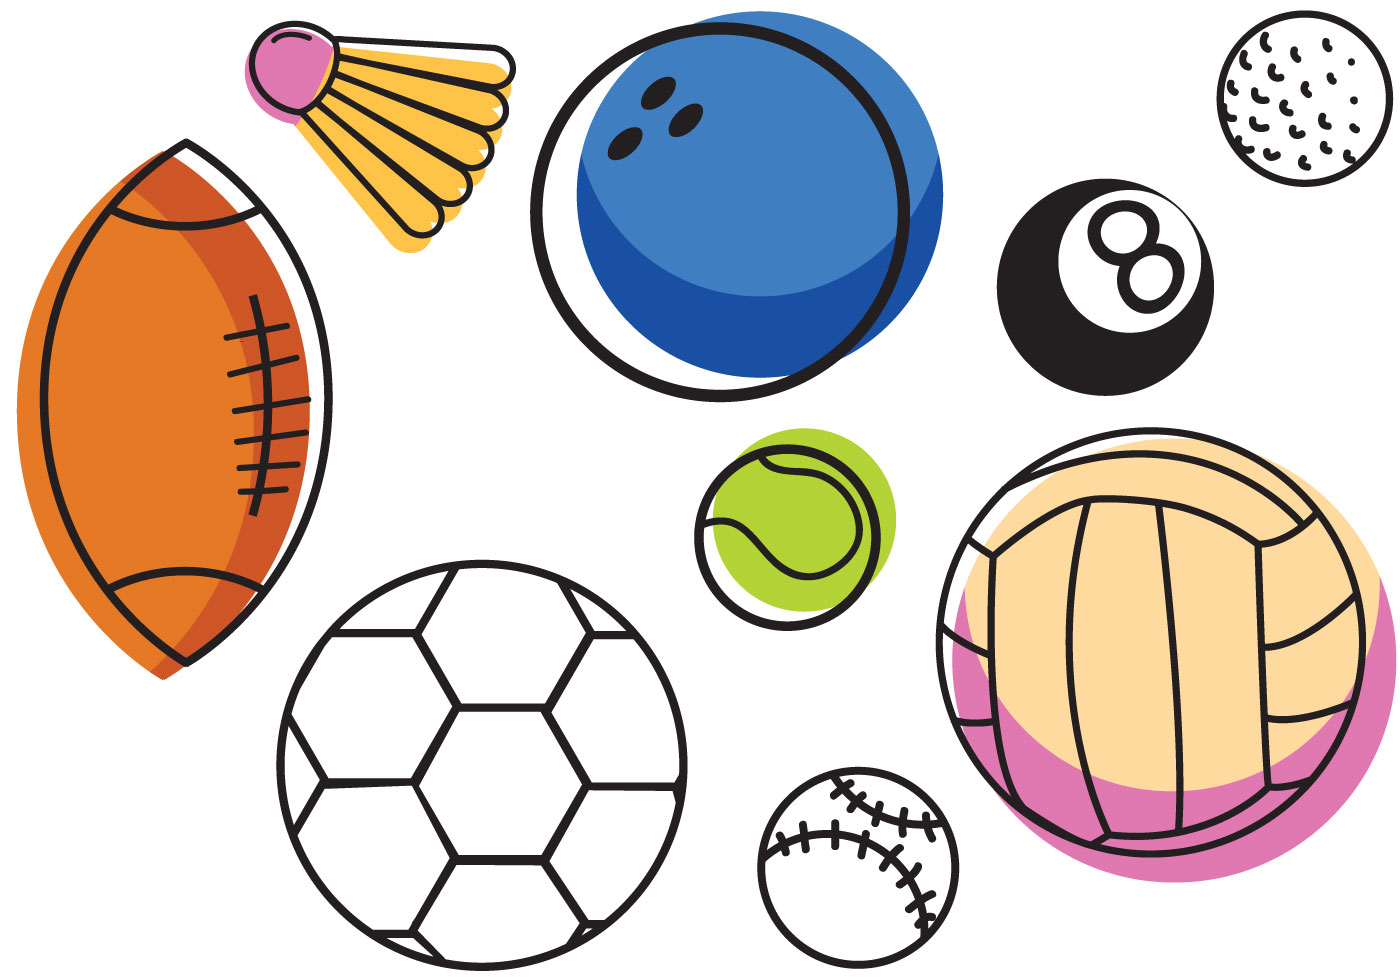 Sports Ball Vector Background Art Free Download: Free Sports Balls Vectors